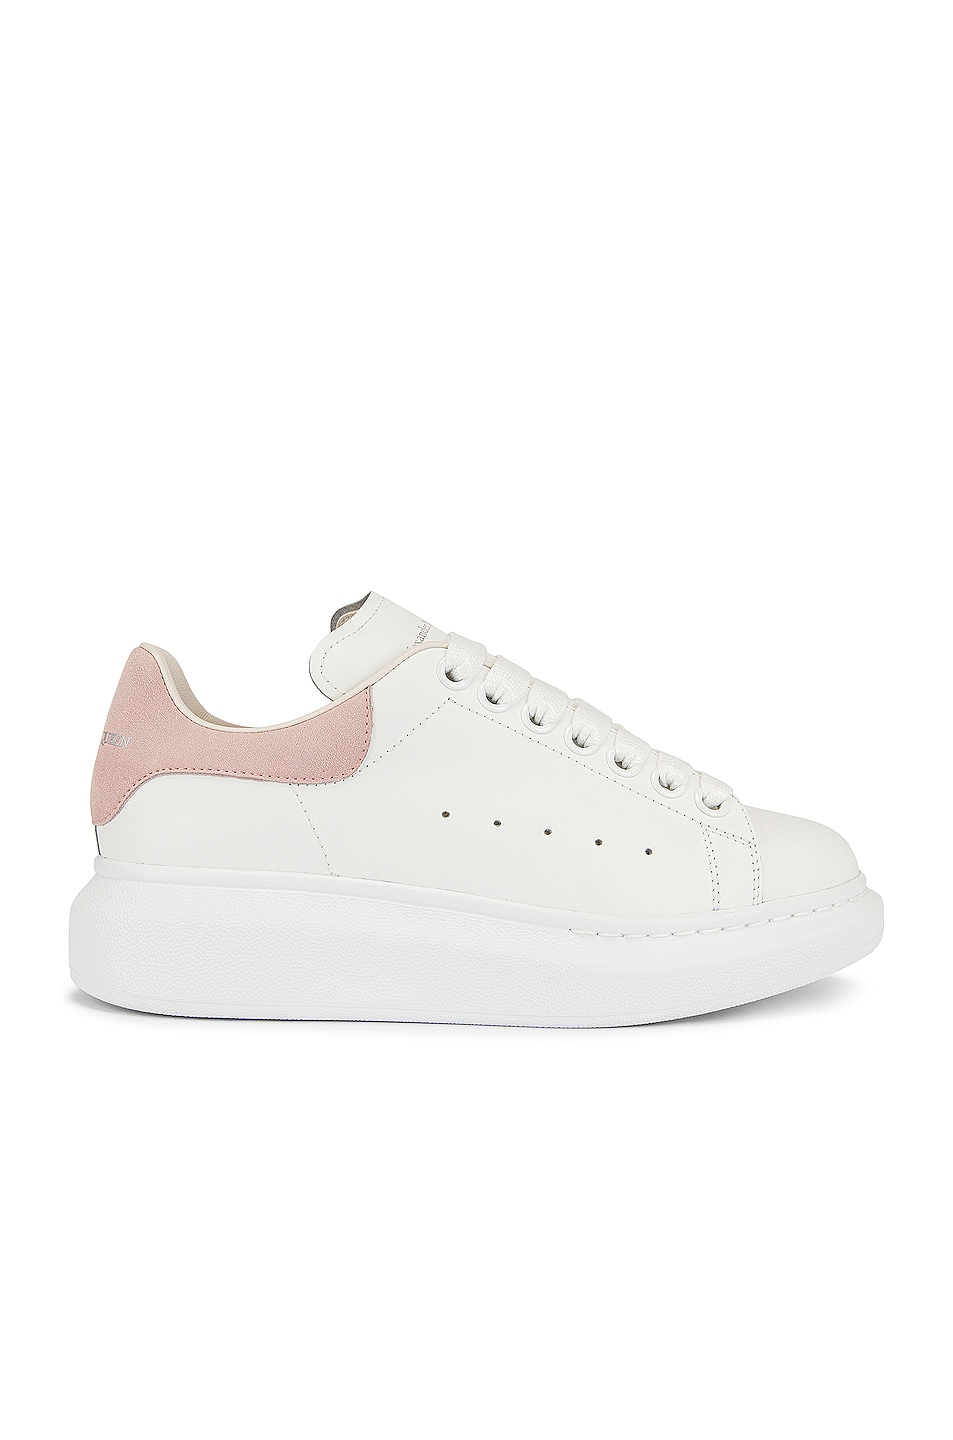 Image 1 of Alexander McQueen Leather Platform Sneakers in White & Rose